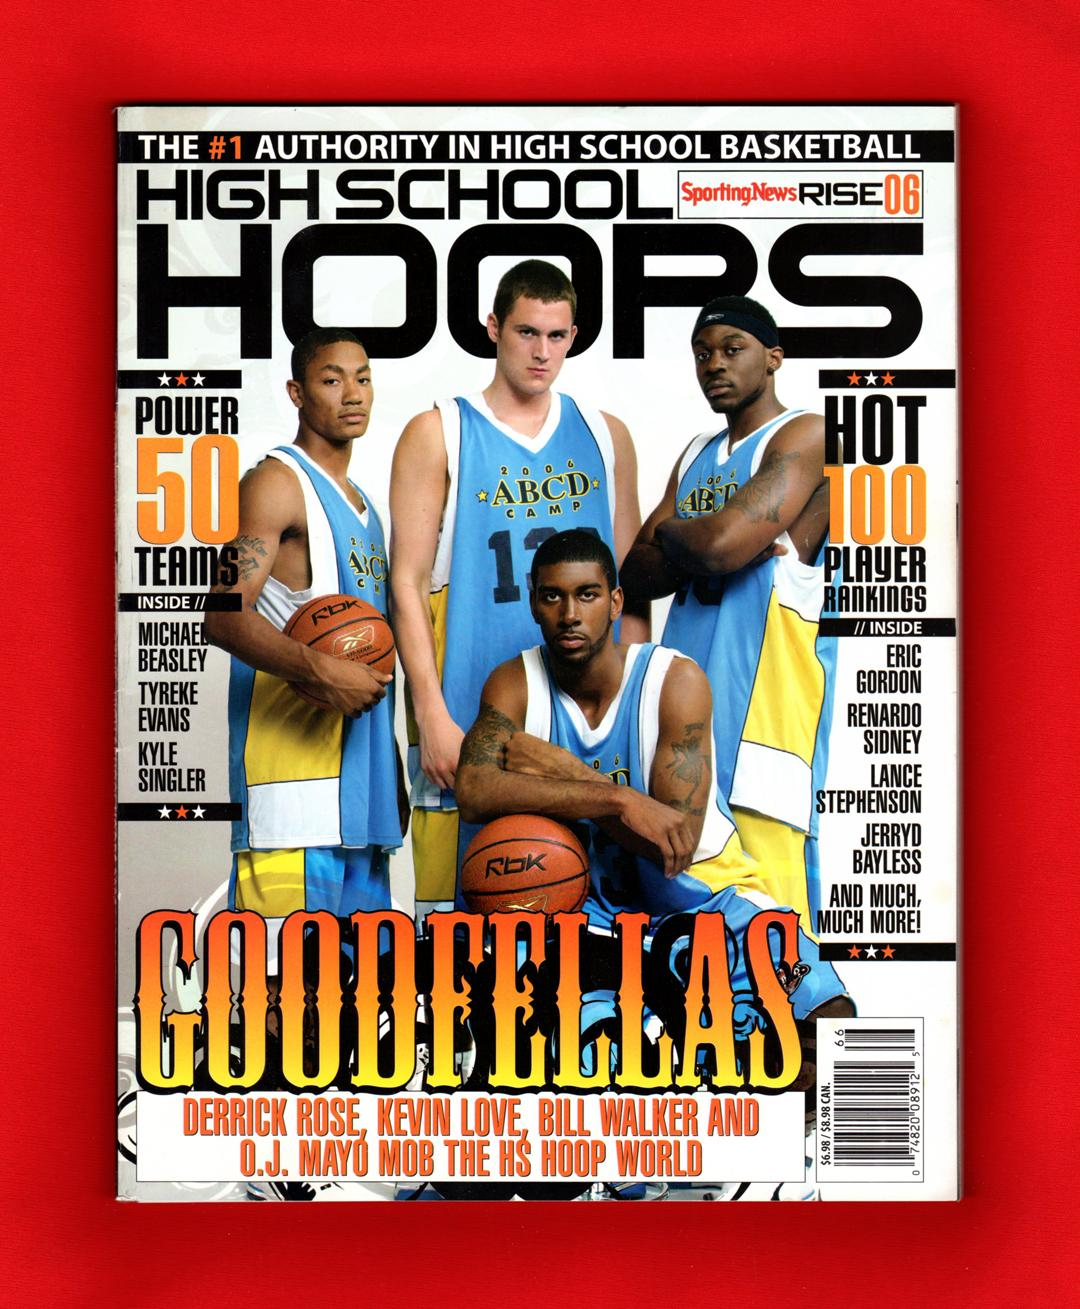 247cc44310d8 High School Hoops 2006 (Sporting News Rise 06). High School Basketball  Recruiting  ...